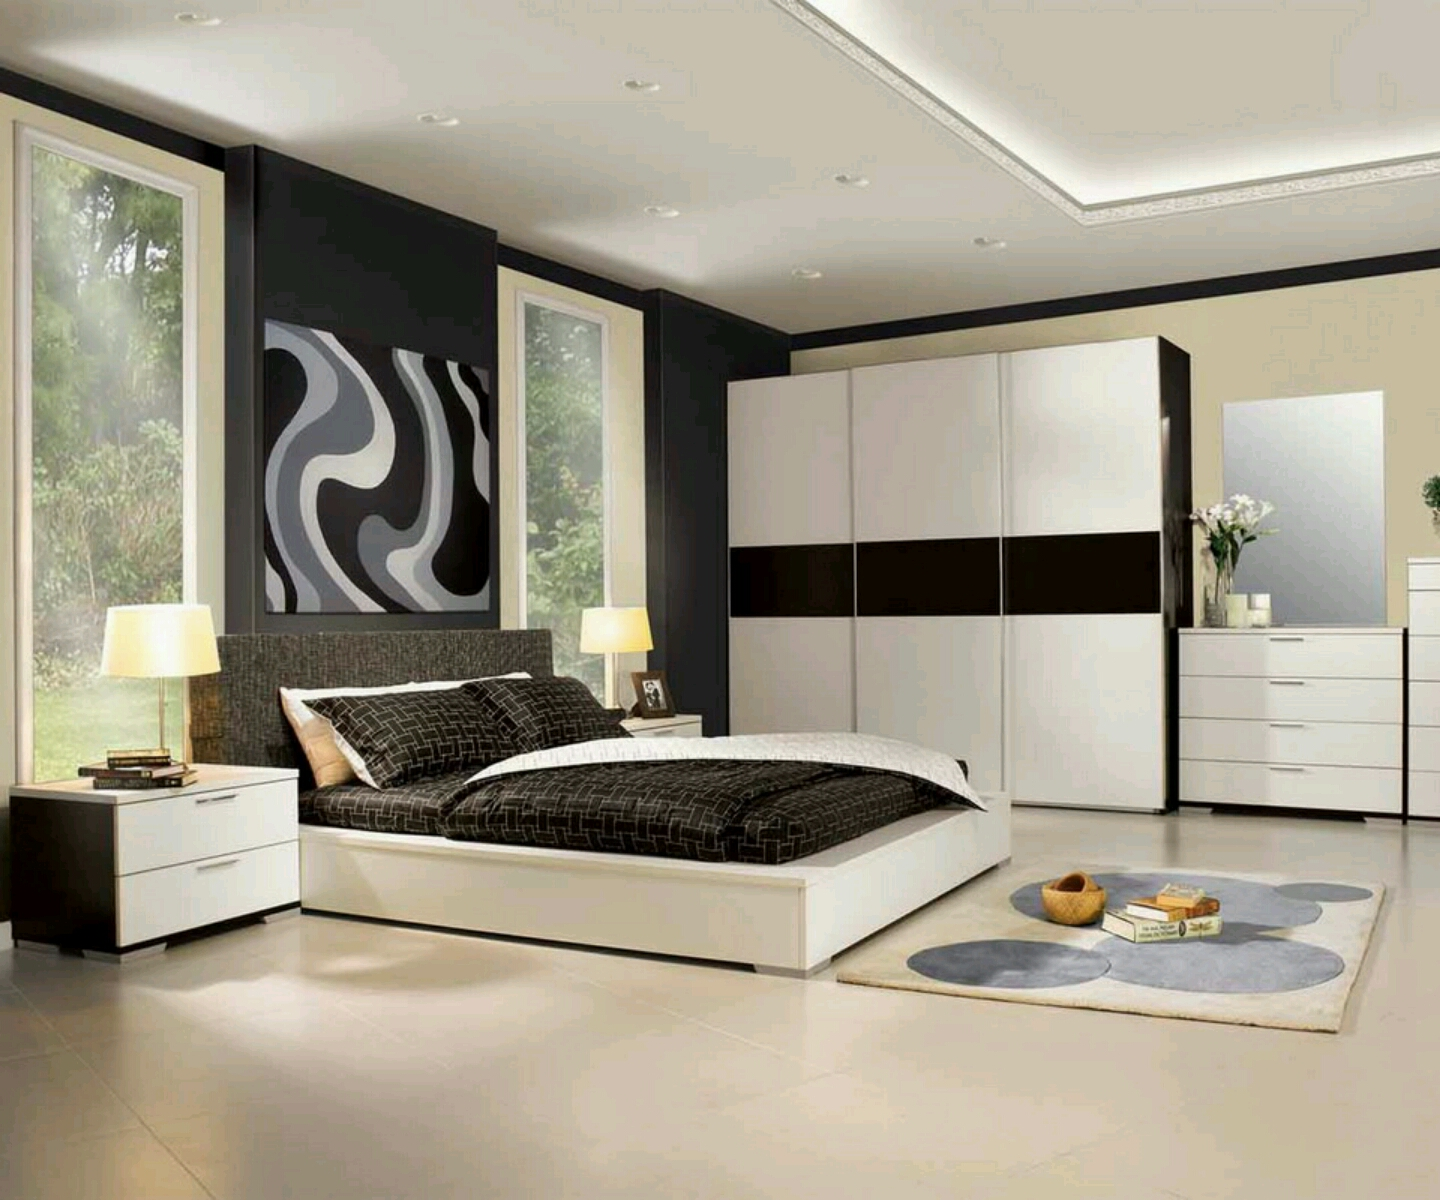 Bedroom Furniture 2014 modern luxury bedroom furniture designs ideas vintage romantic